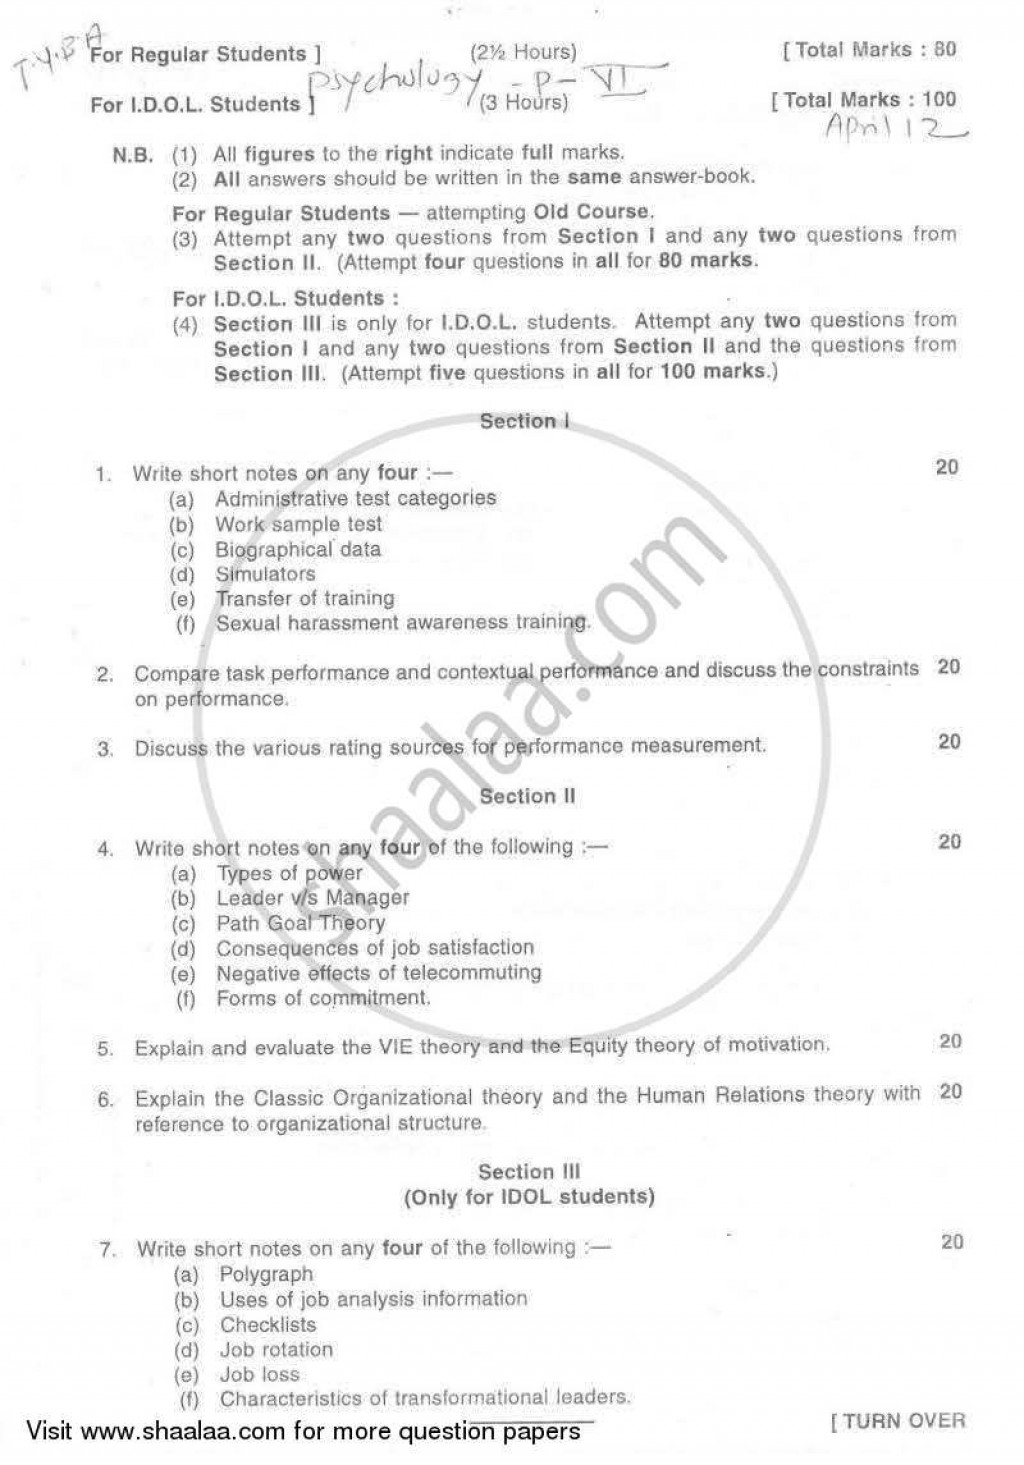 017 Psychologyearch Paper On Dreams University Of Mumbai Bachelor Industrial Organizational T Y Yearly Pattern Semester Tyba 2011 29a03925dfc524f2aa4cb10e4d3da996a Singular Psychology Research Articles Topics Large